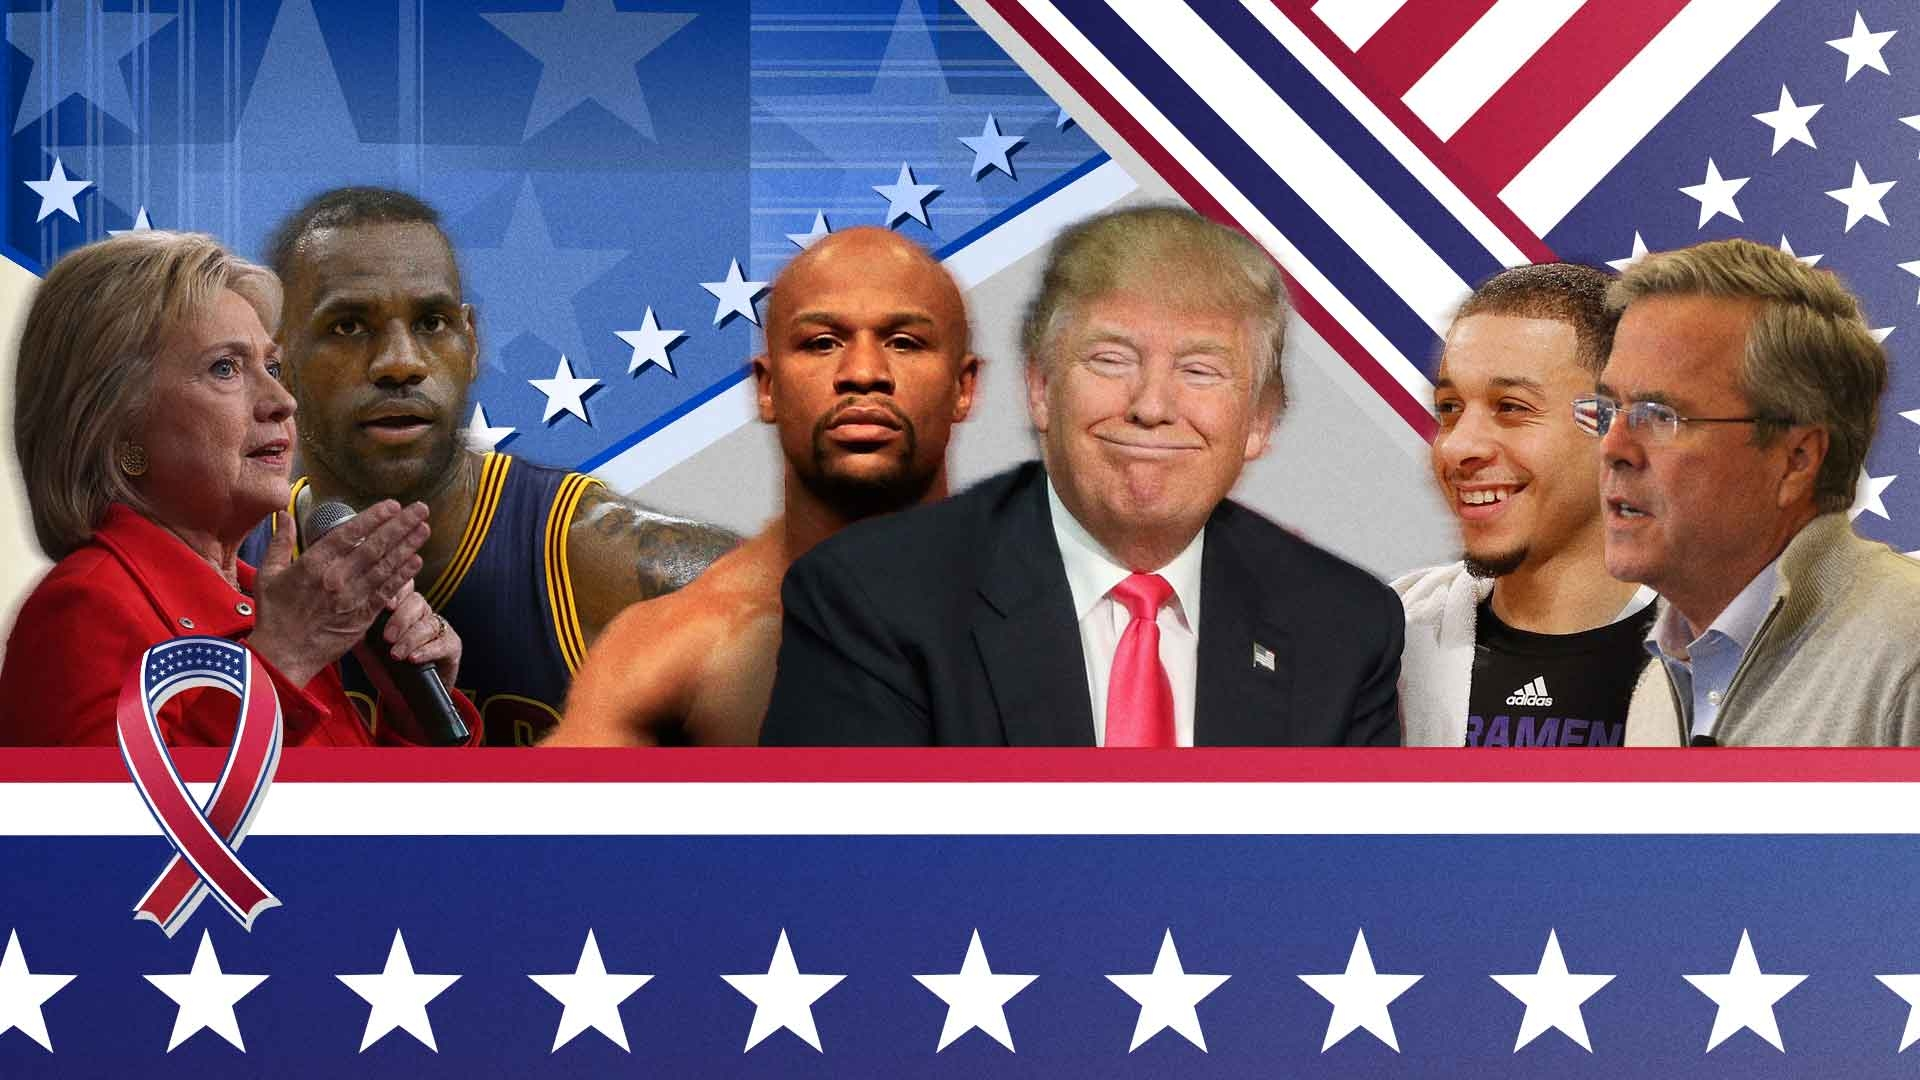 presidential election 2016 which sports figure does each candidate